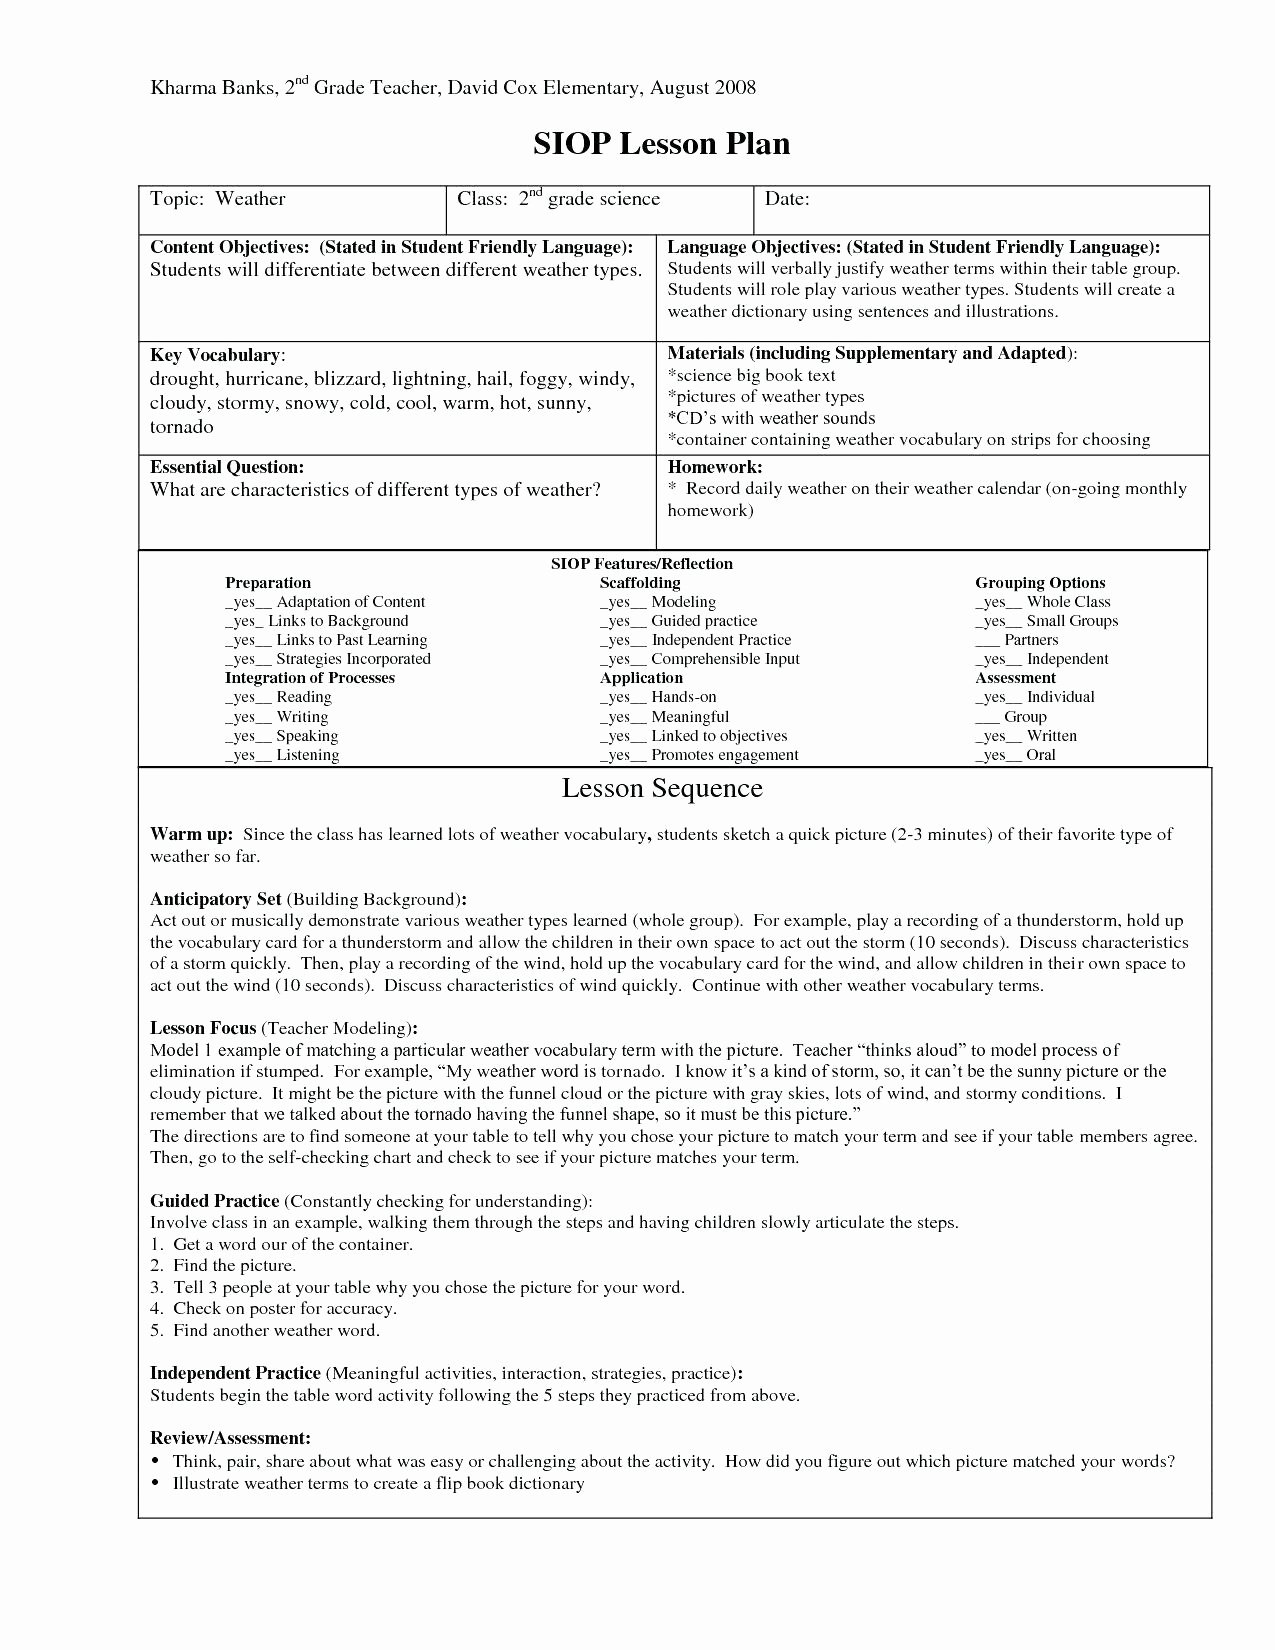 Siop Lesson Plan Template 3 New Siop Lesson Plan Example 2nd Grade for First